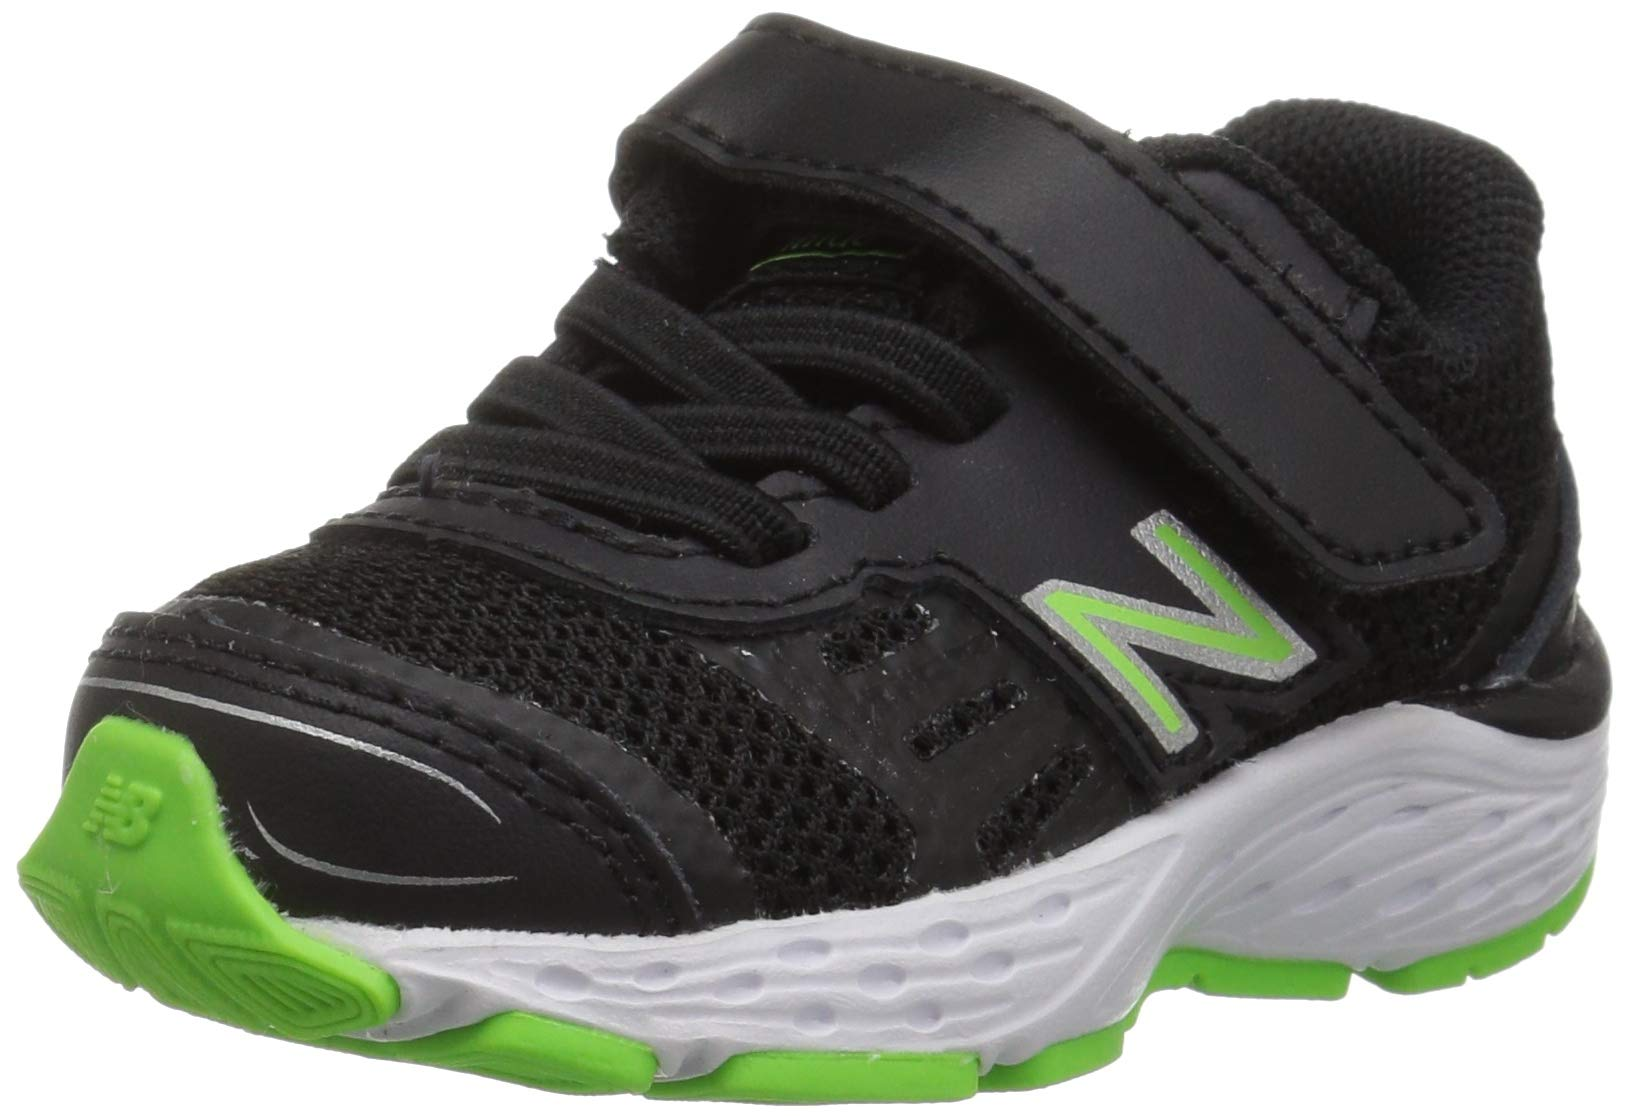 New Balance Boys' 680v5 Hook and Loop Running Shoe Black/RBG Green 2 M US Infant by New Balance (Image #1)